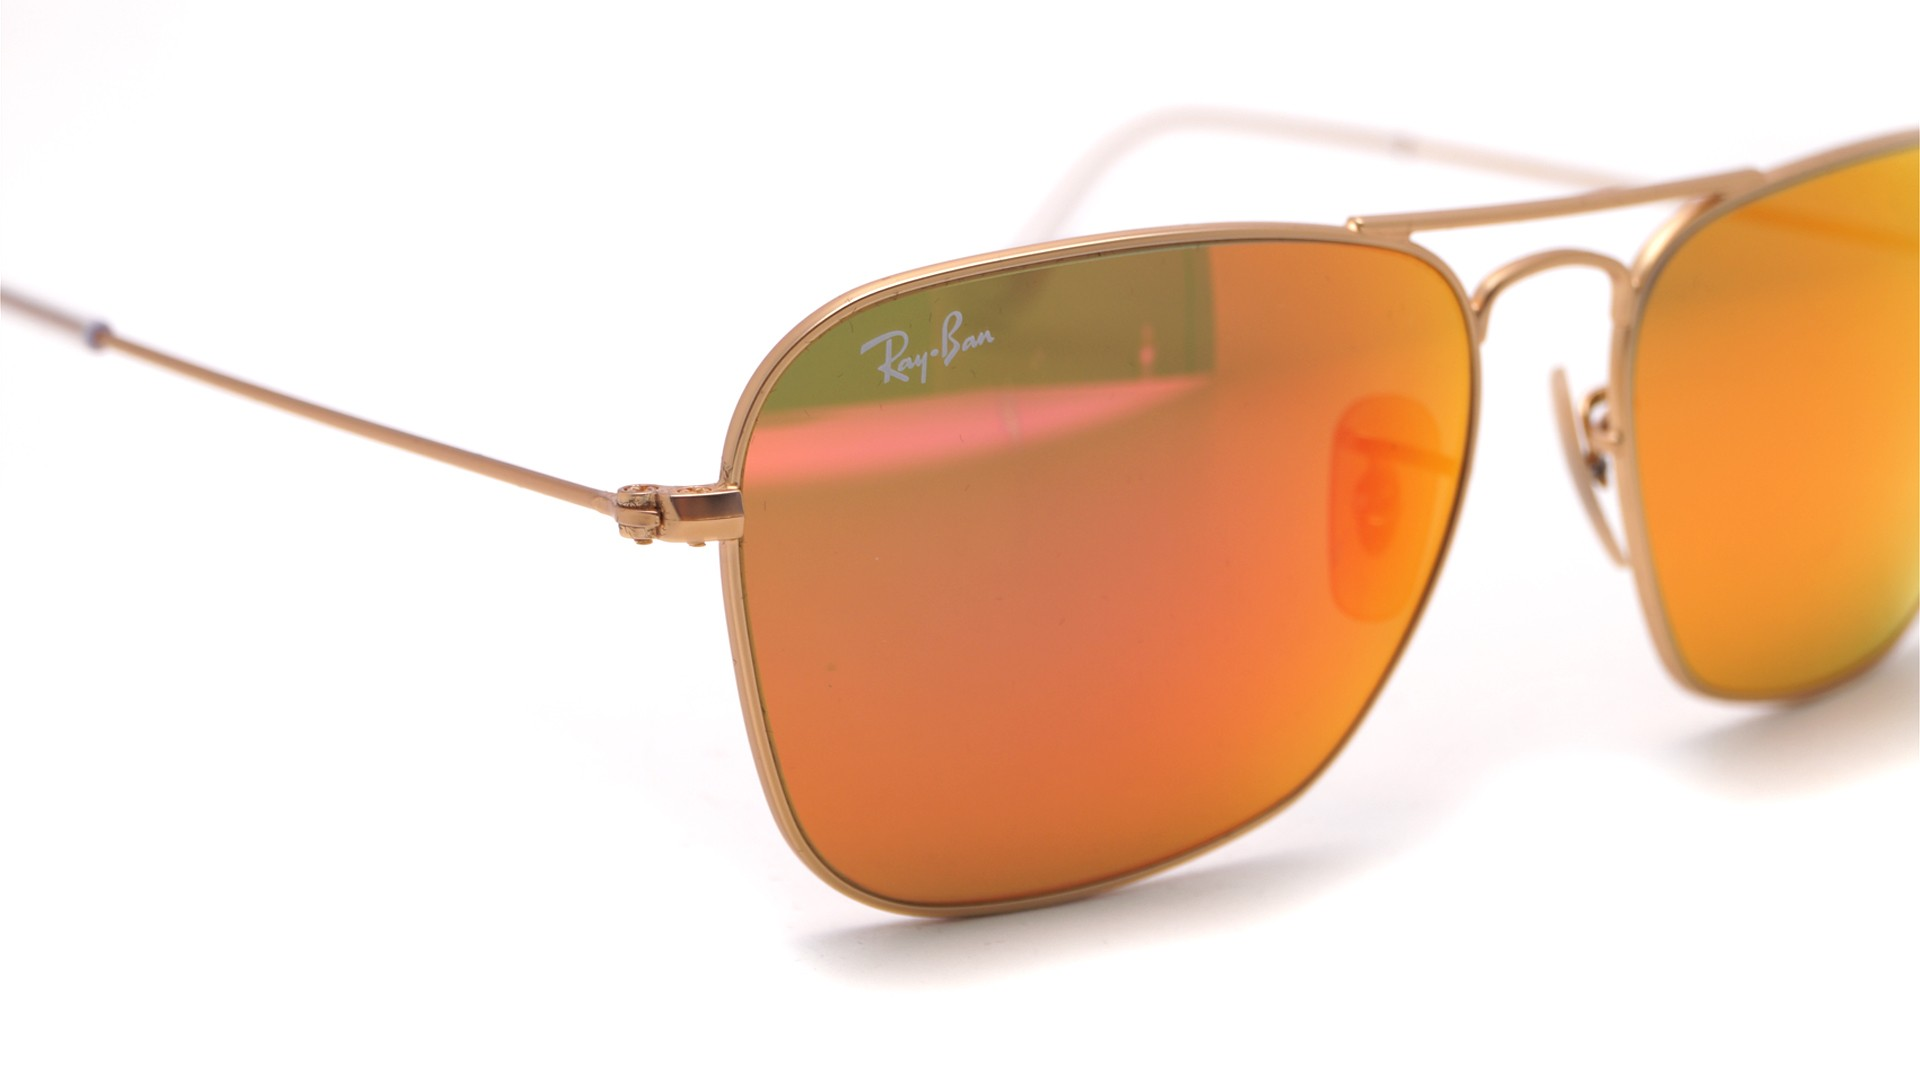 73f3d5fa88b ... where can i buy sunglasses ray ban caravan gold flash lenses rb3136 112  69 58 15